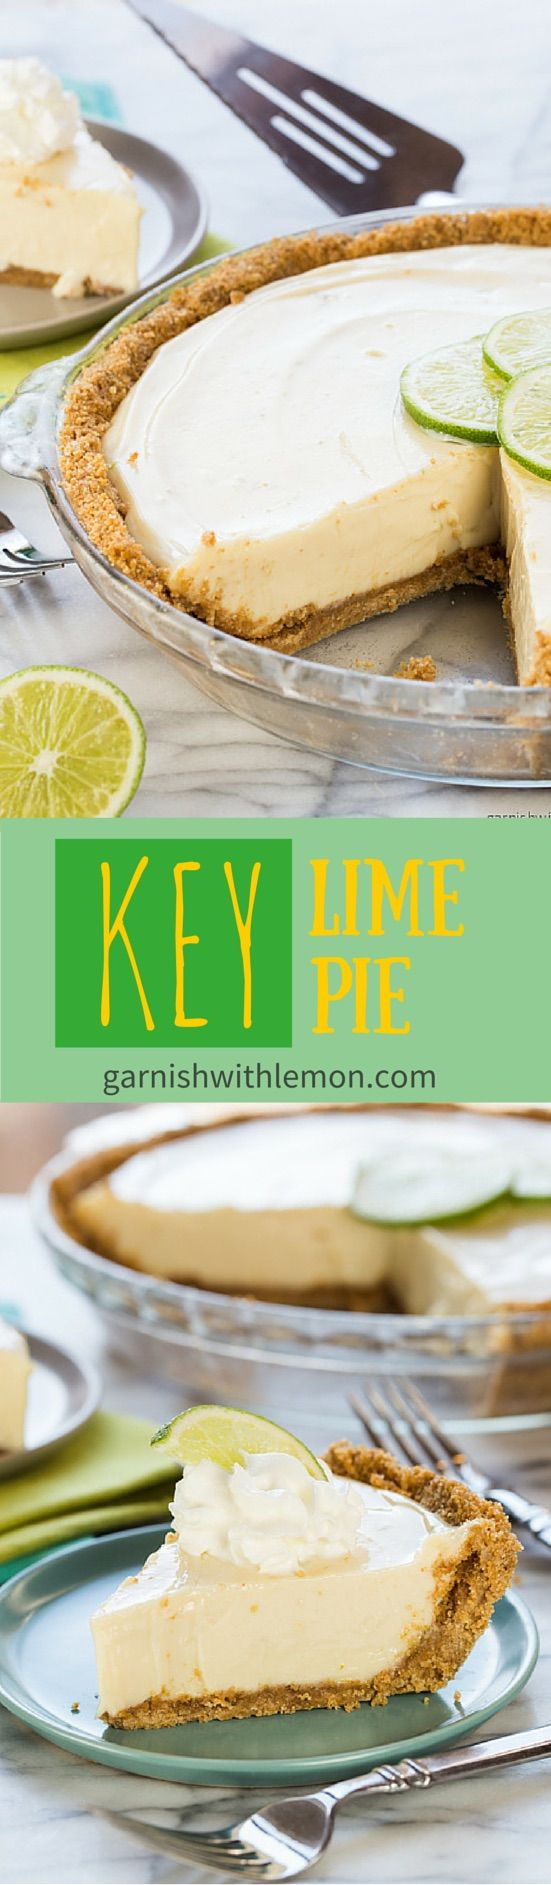 Easy Key Lime Pie Recipe ~ http://www.garnishwithlemon.com